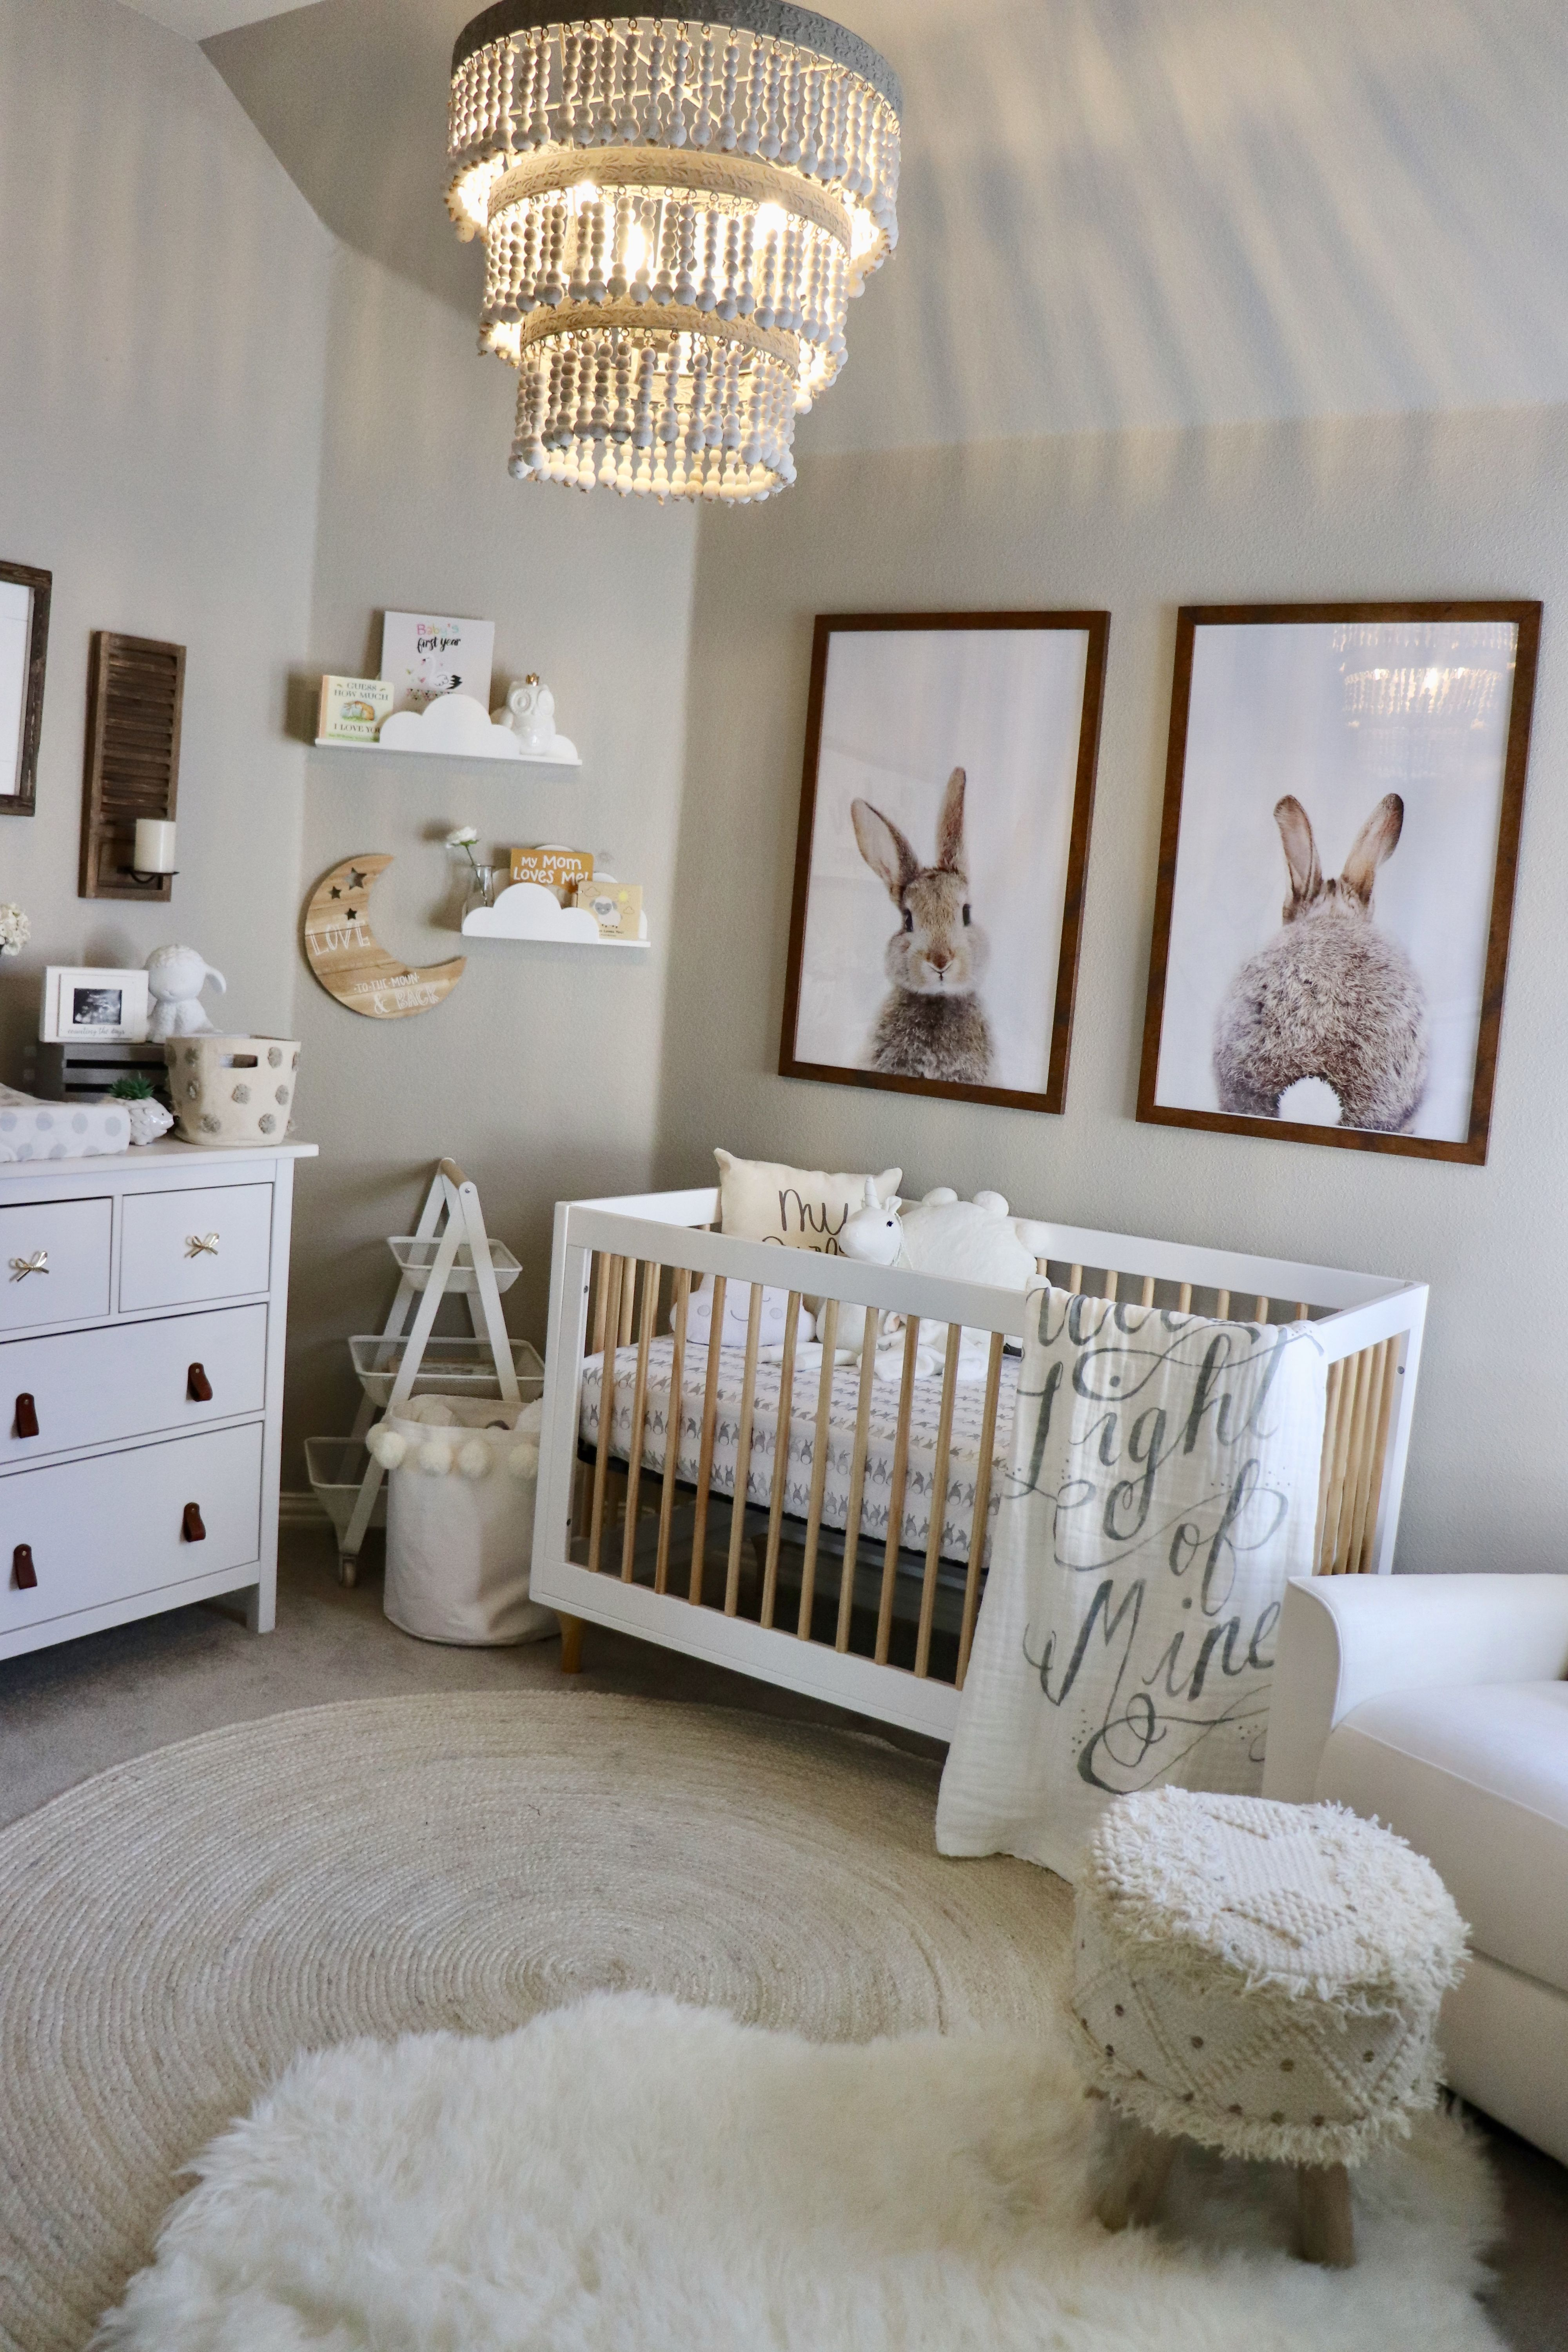 I Am Not A Major Pink Fan So My Goal Was To Create Cly Sweet Feminine Nursery Without It Used Neutral White Ivory And Gray Palette With